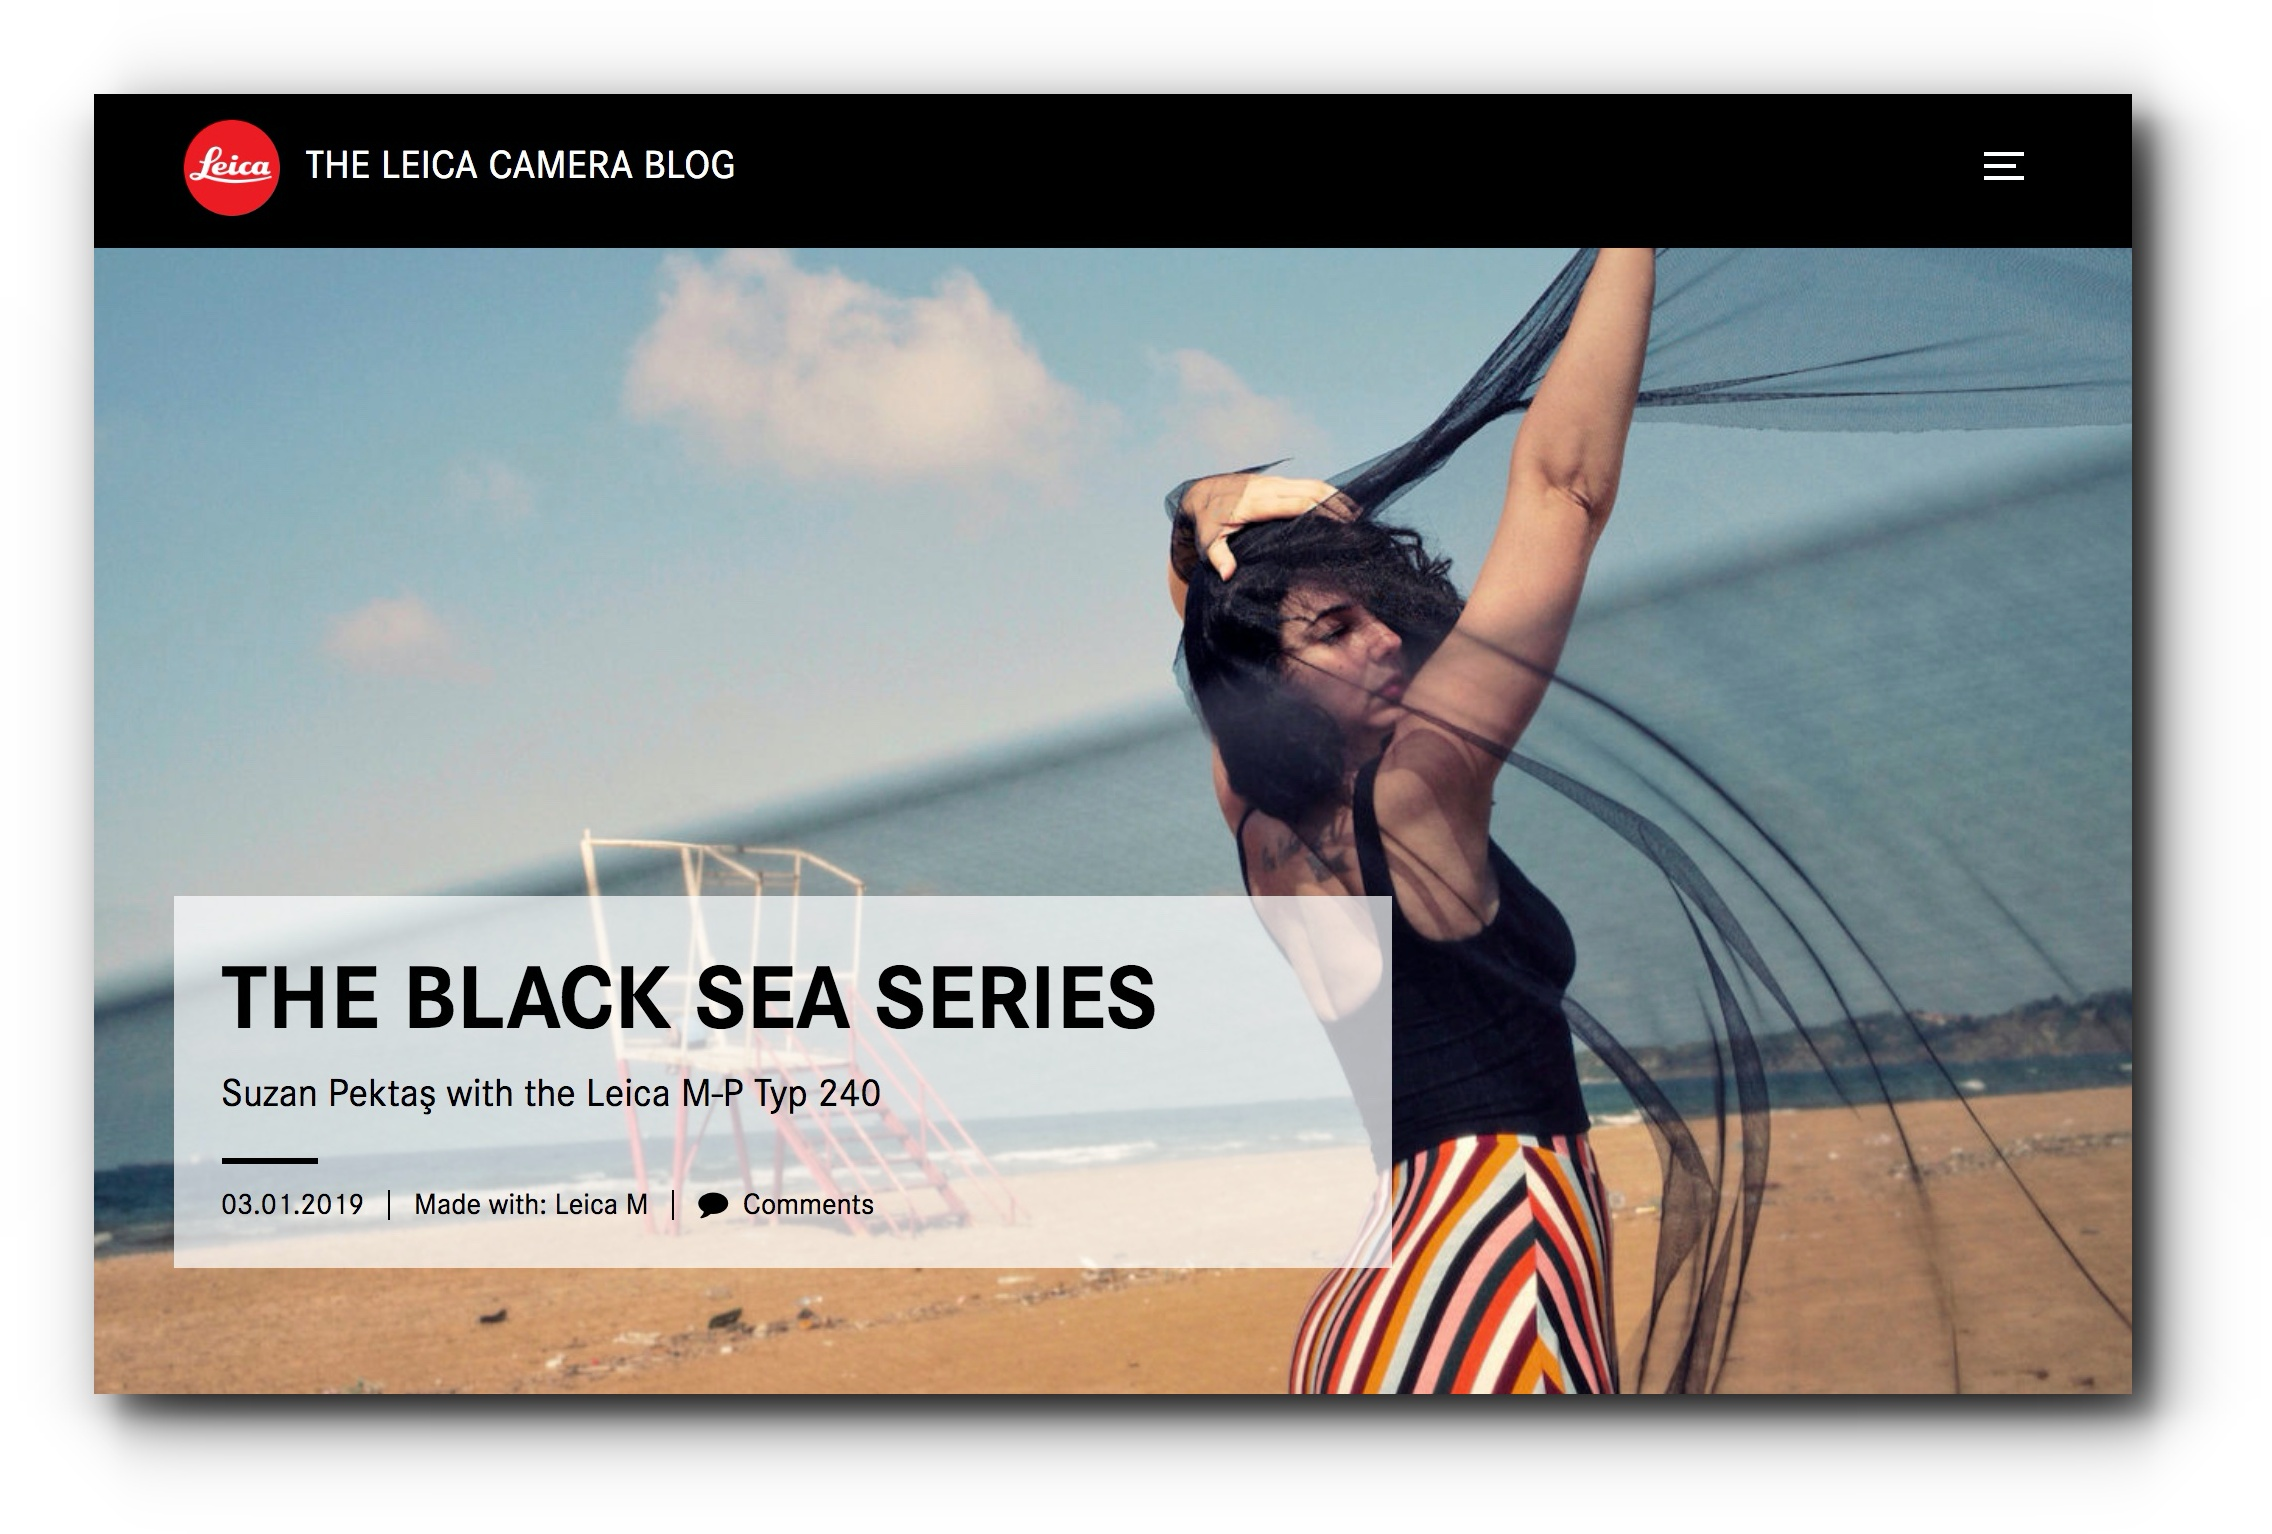 The Black Sea series featured in the Leica Camera Blog - December, 2018